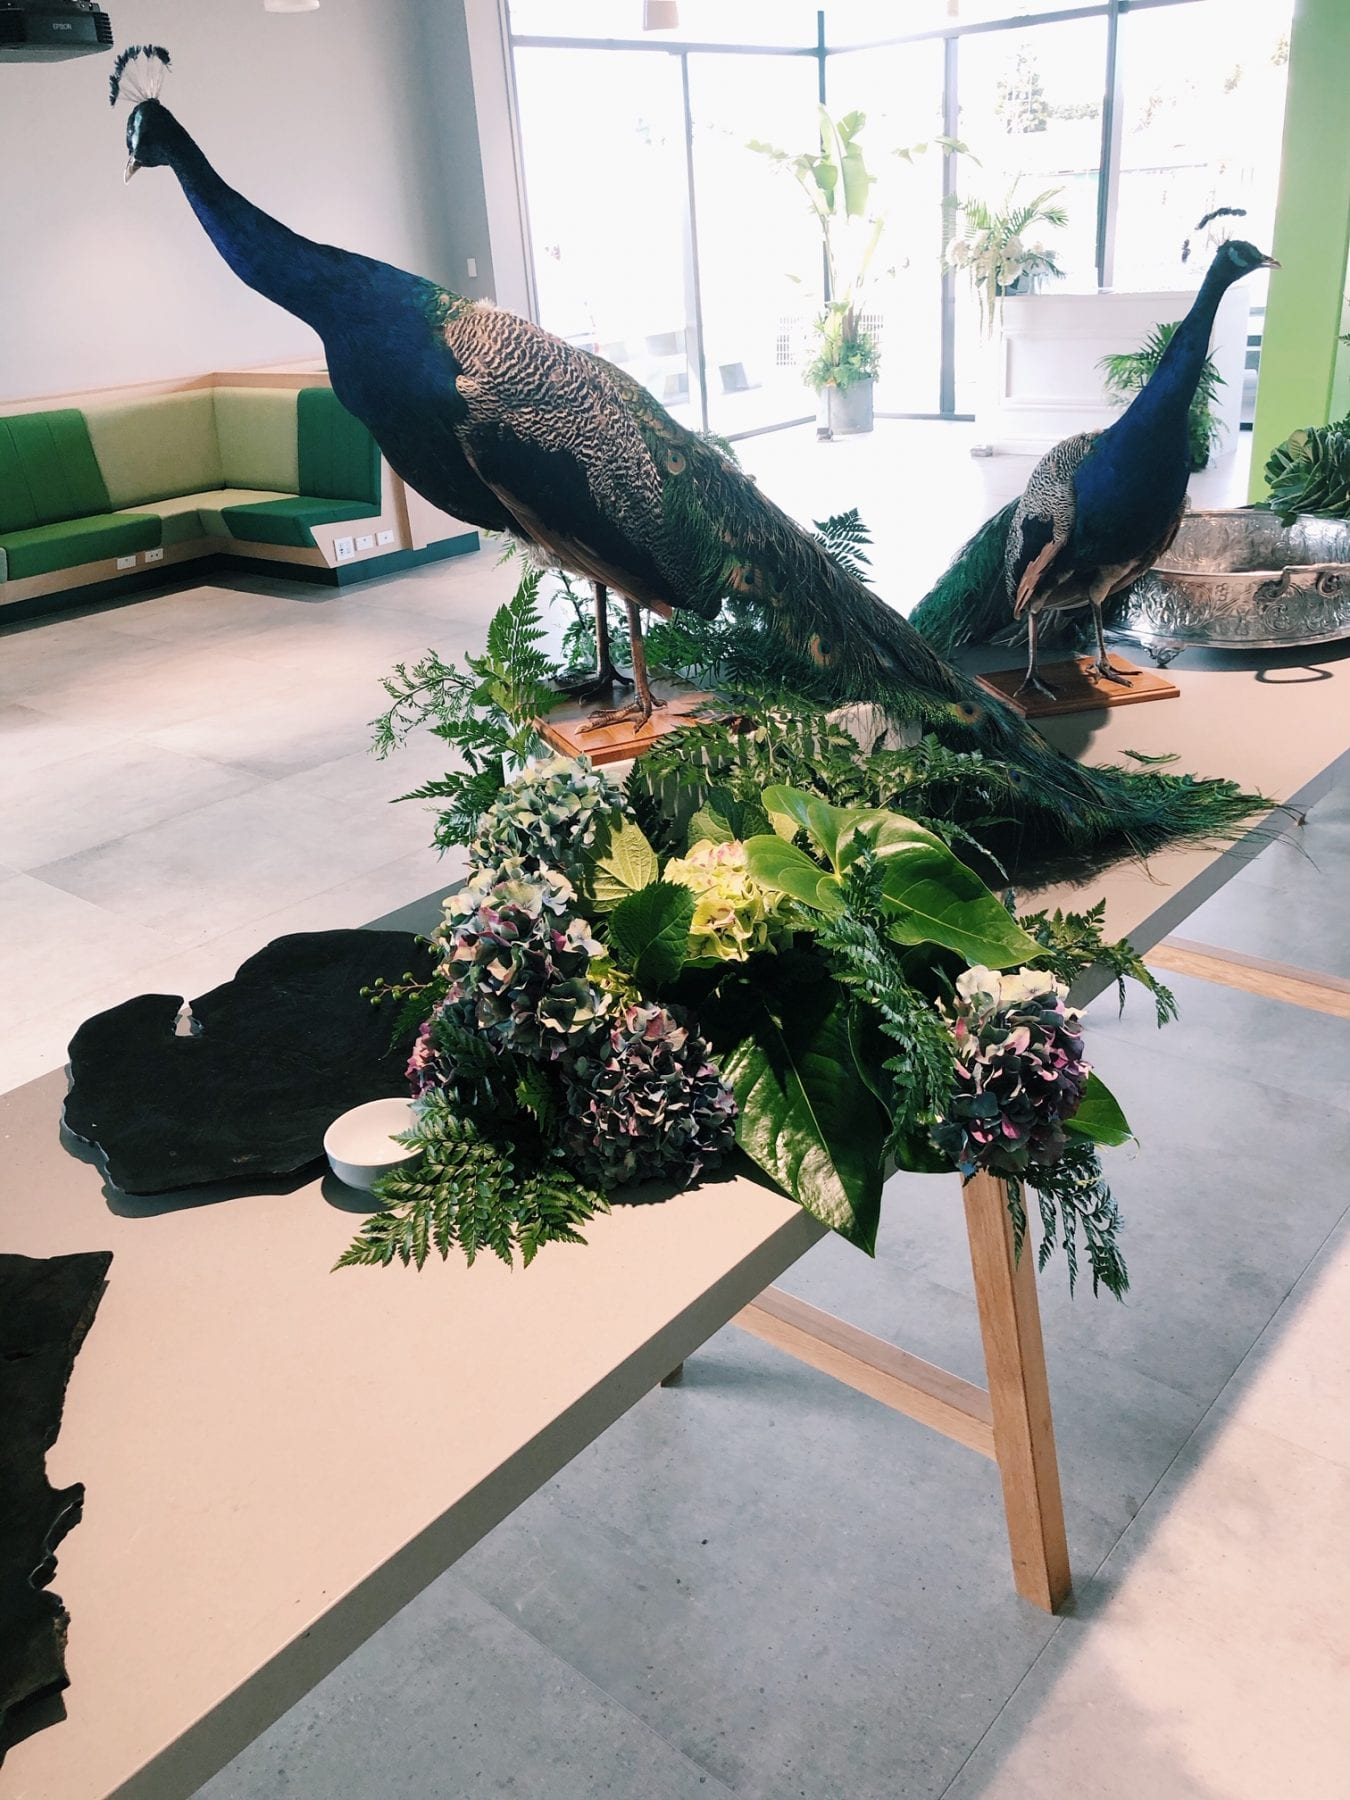 Table floral display with peacocks from On My Hand Floral and Styling in Tauranga.